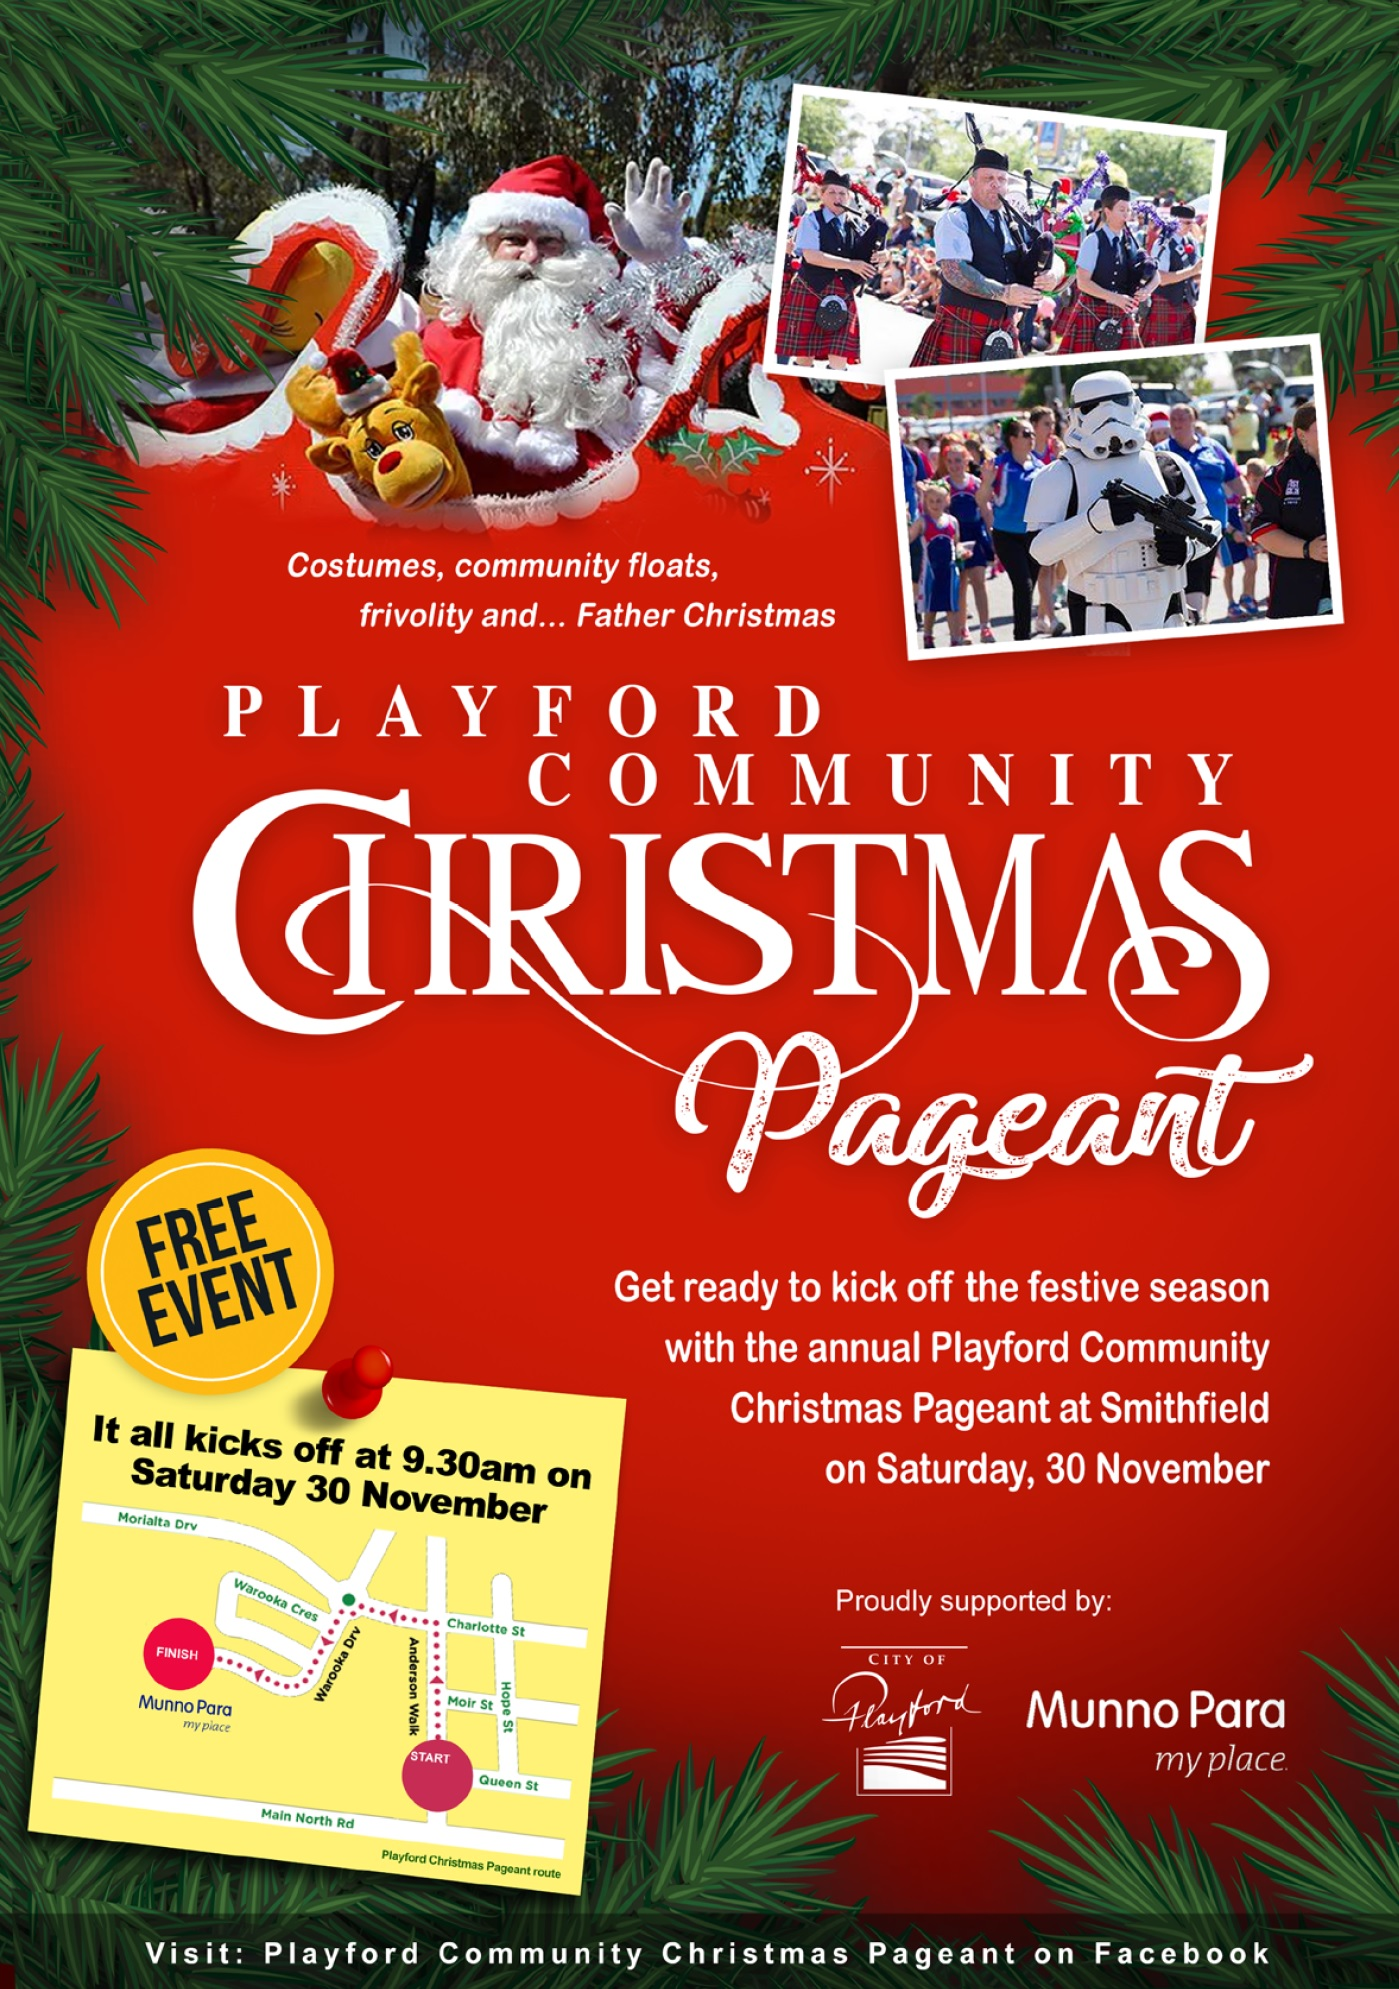 Playford Community Christmas Pageant